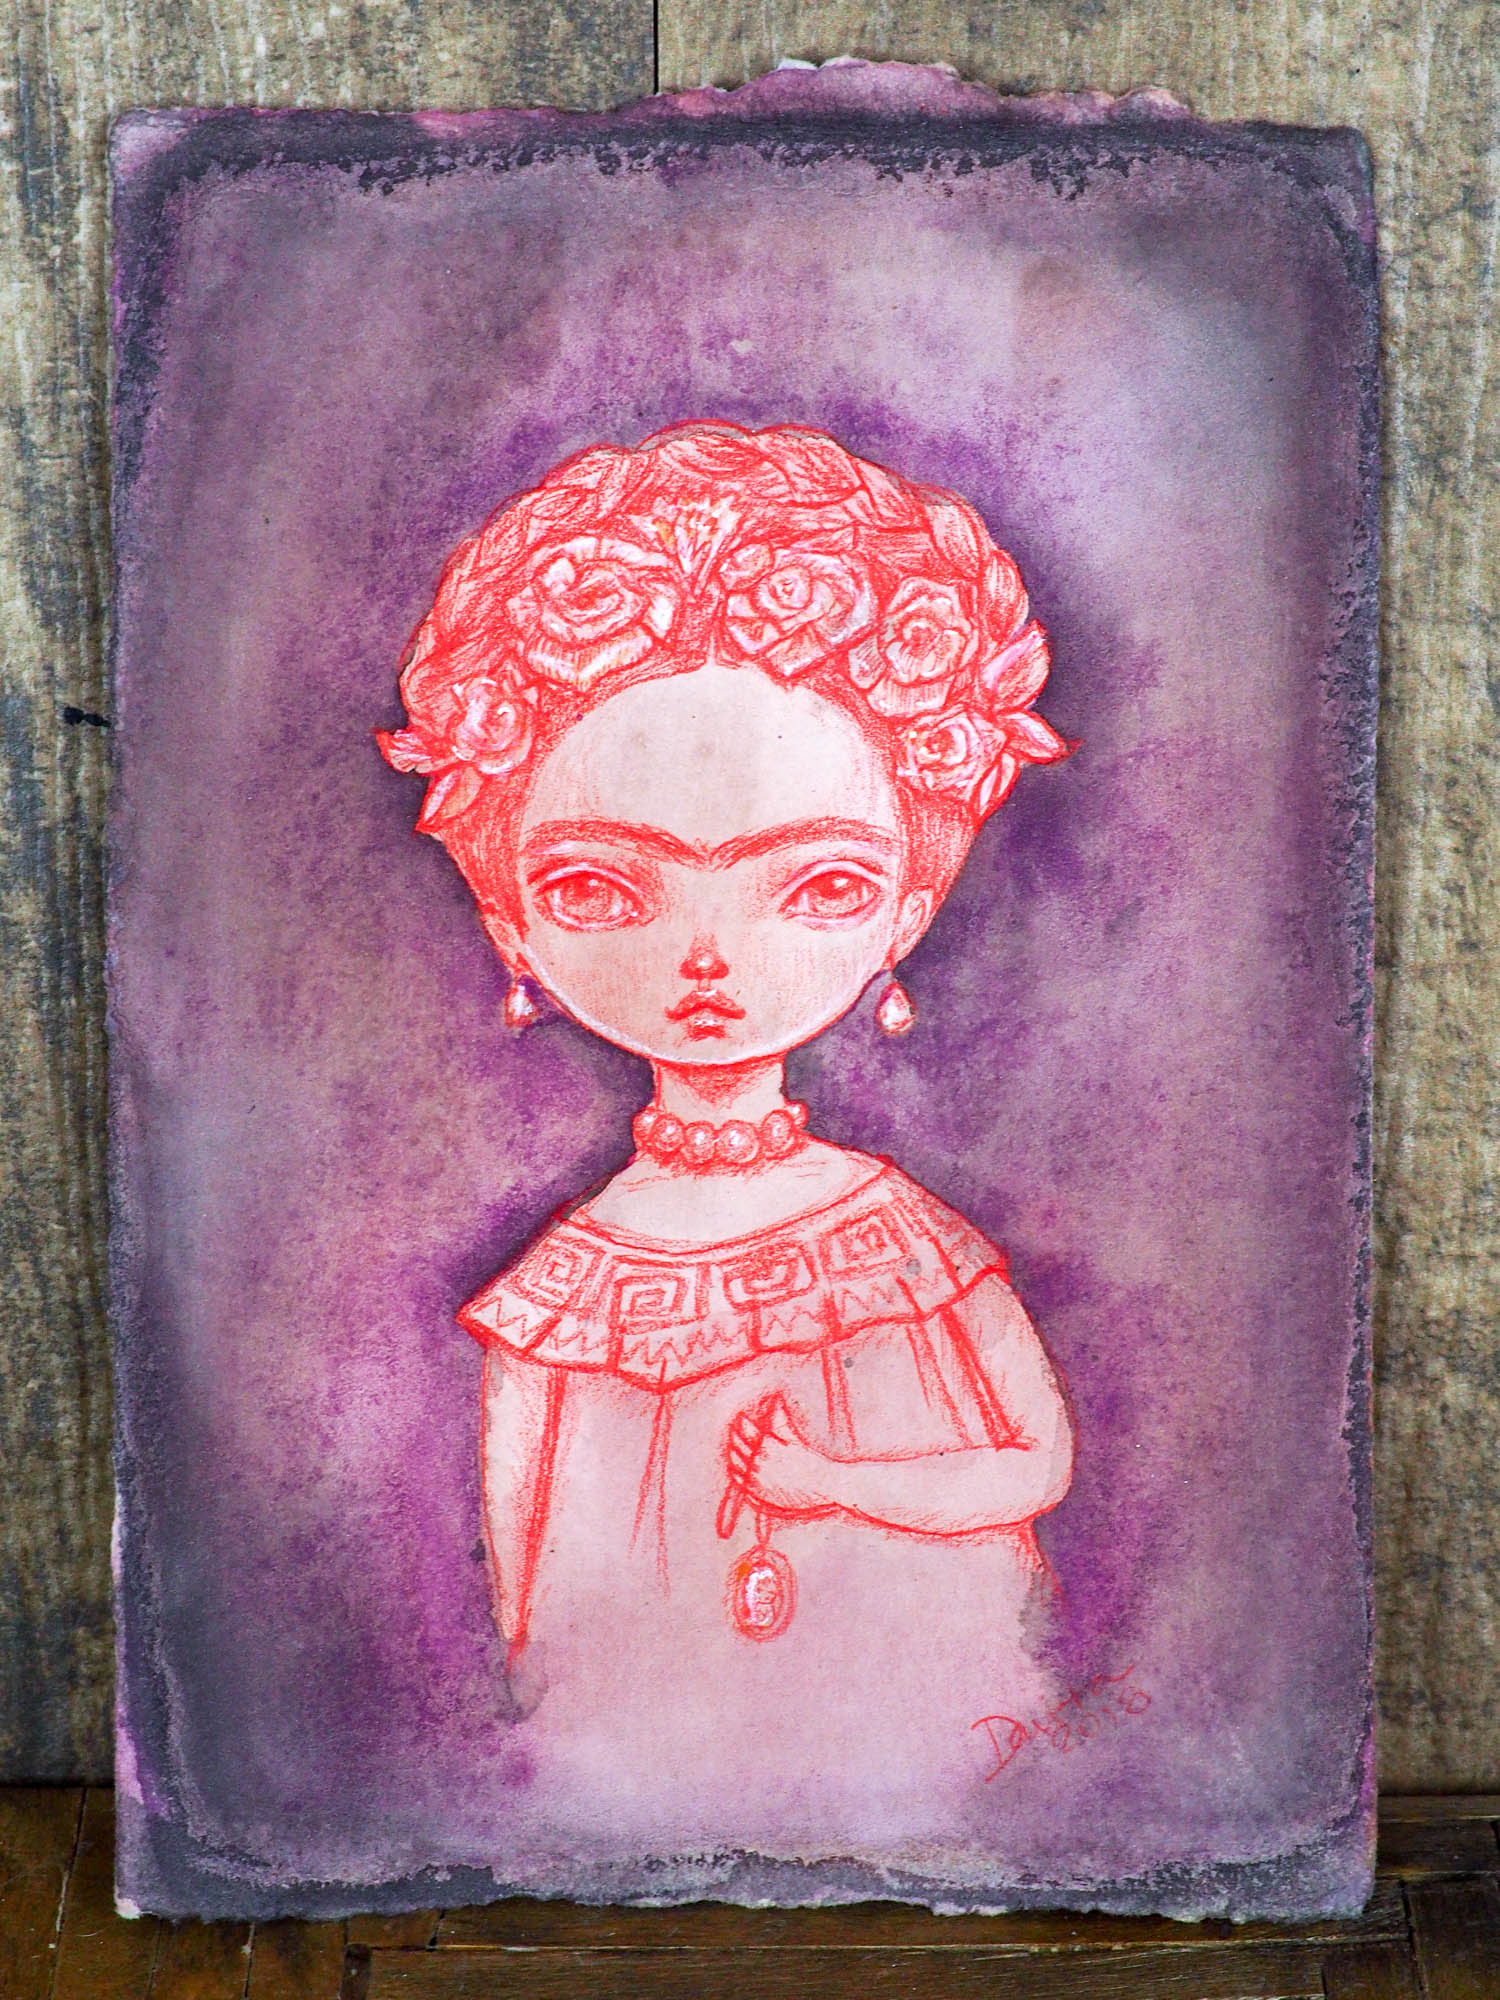 FRIDA'S GHOST - Watercolor and pencil original drawing by Danita Art, Original Art by Danita Art